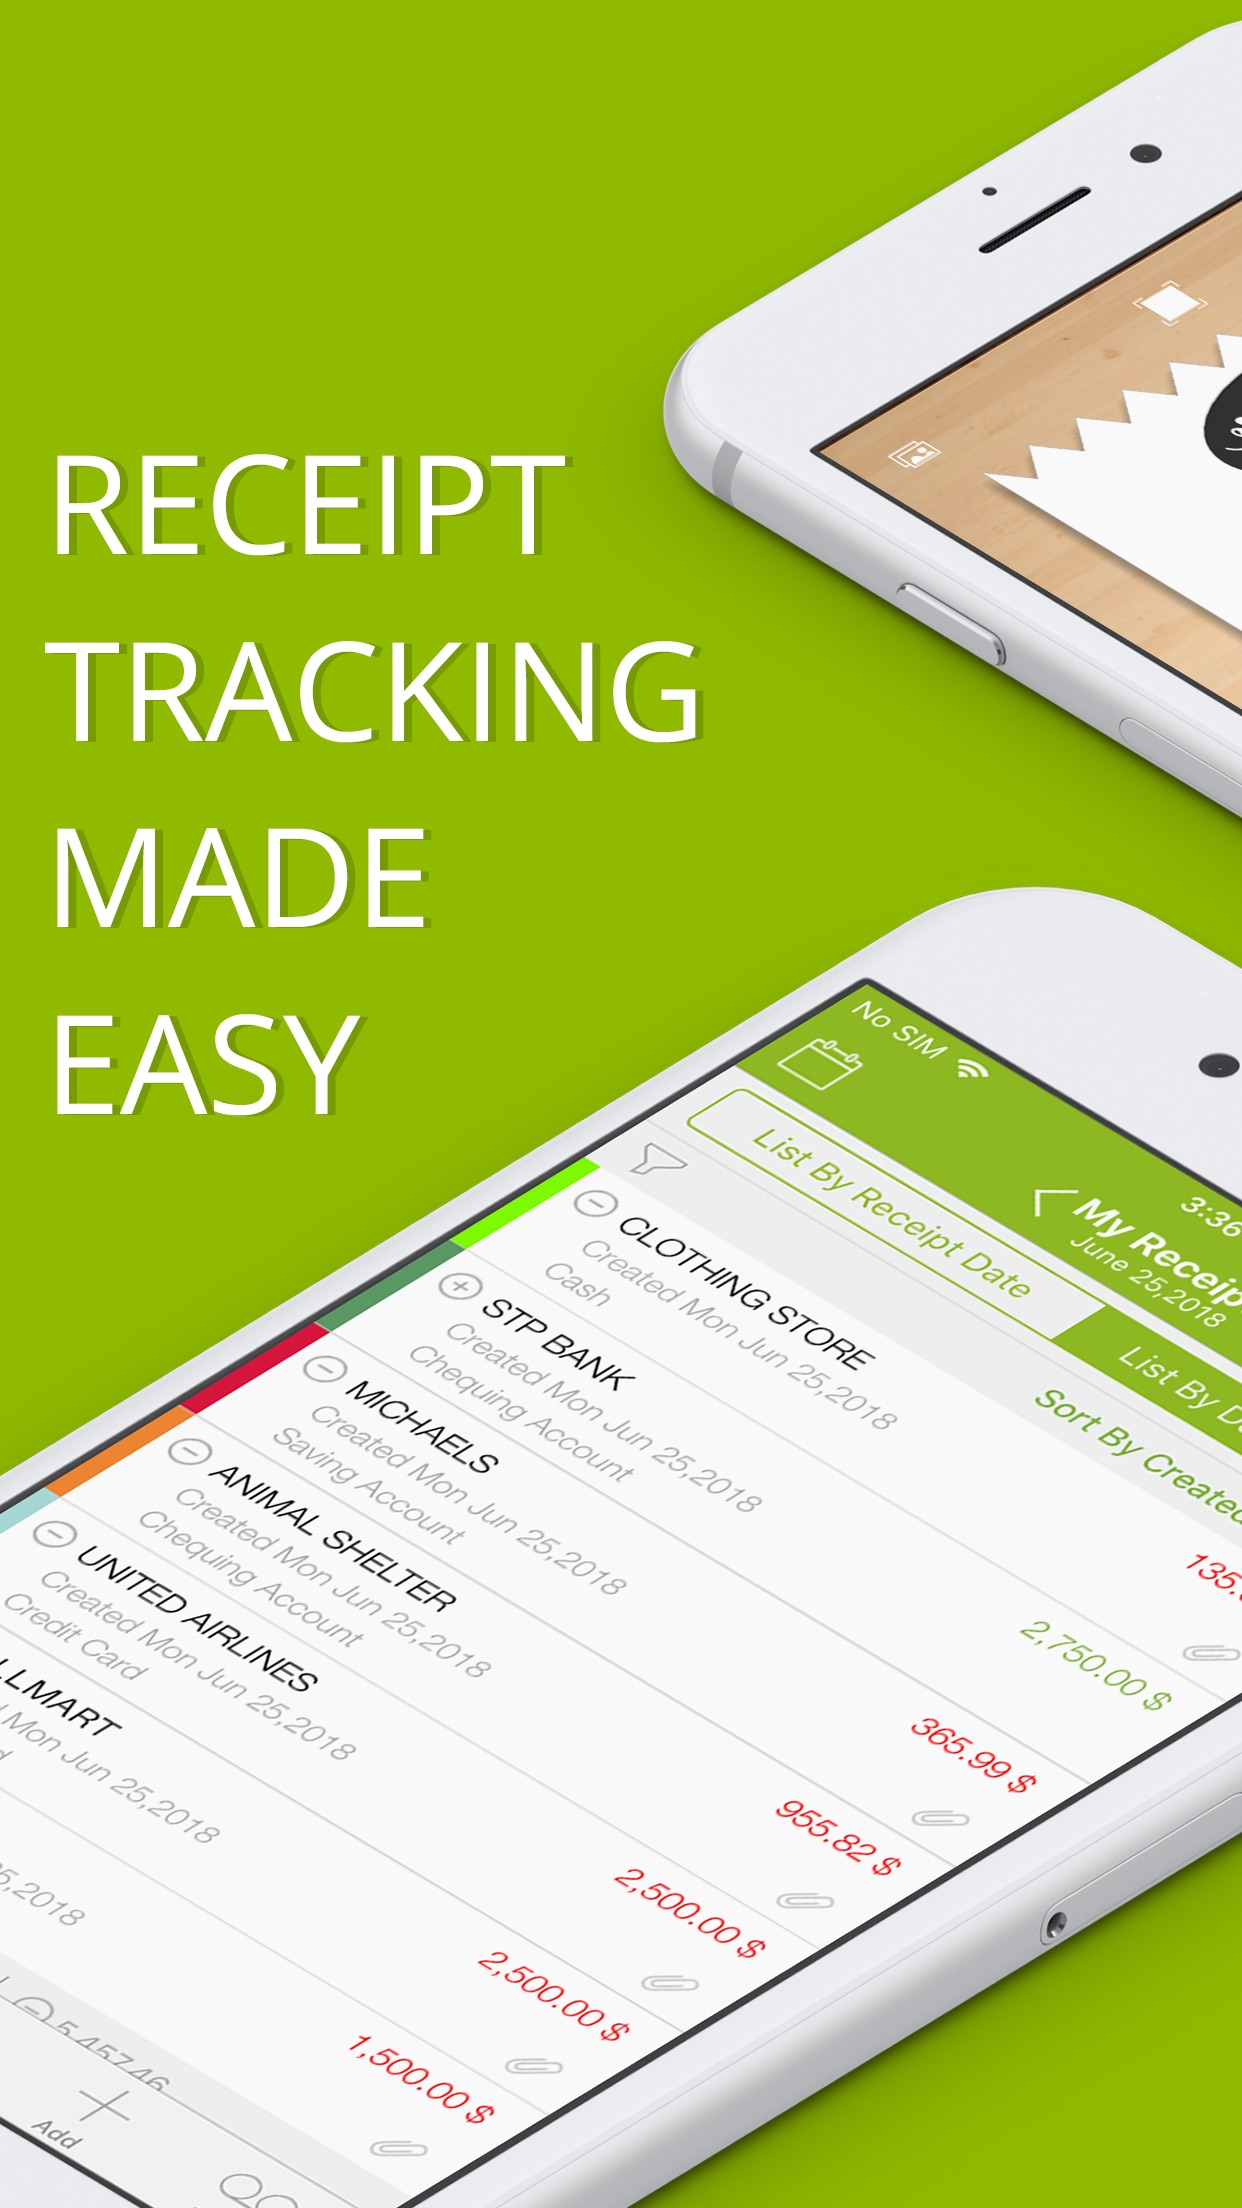 Foreceipt Receipt Tracker App Screenshot